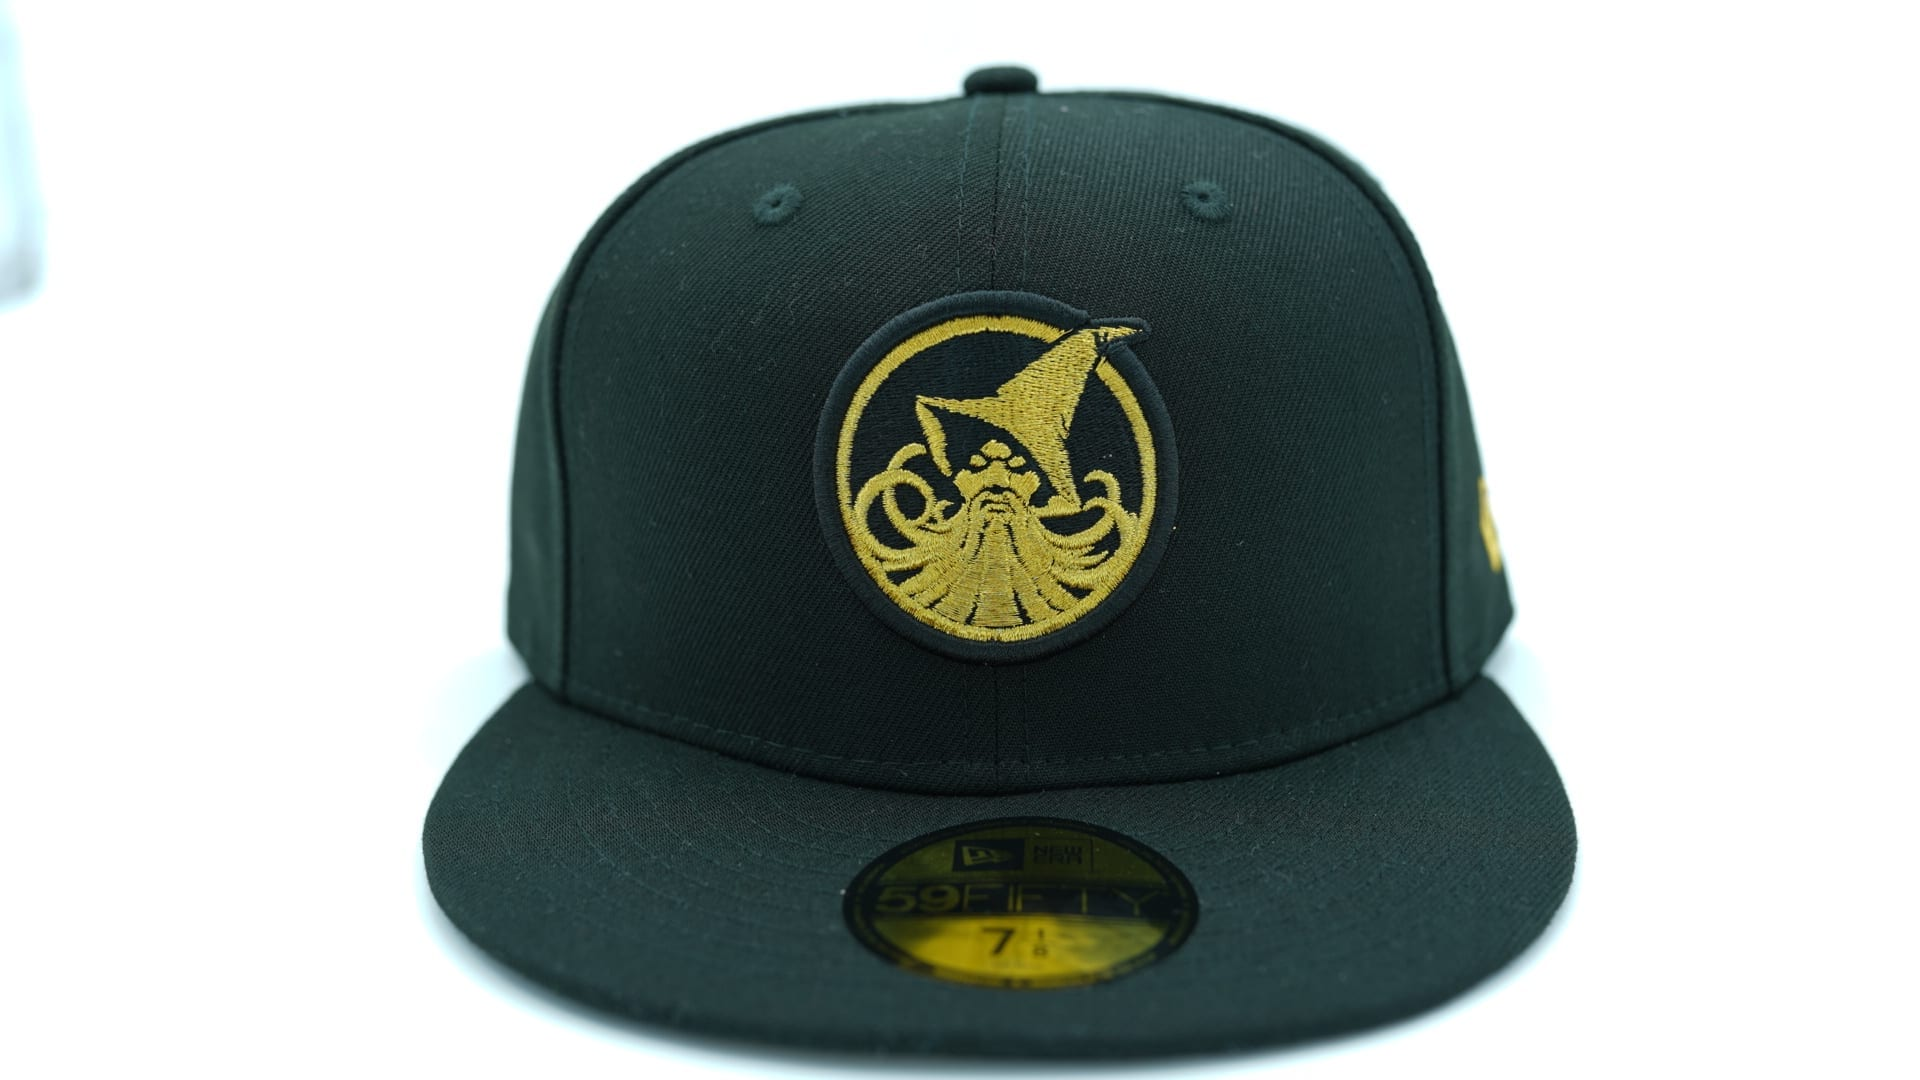 Limited Edition Everett AquaSox Copa Teal Cap 59FIfty Fitted Cap by NEW ERA x MiLB